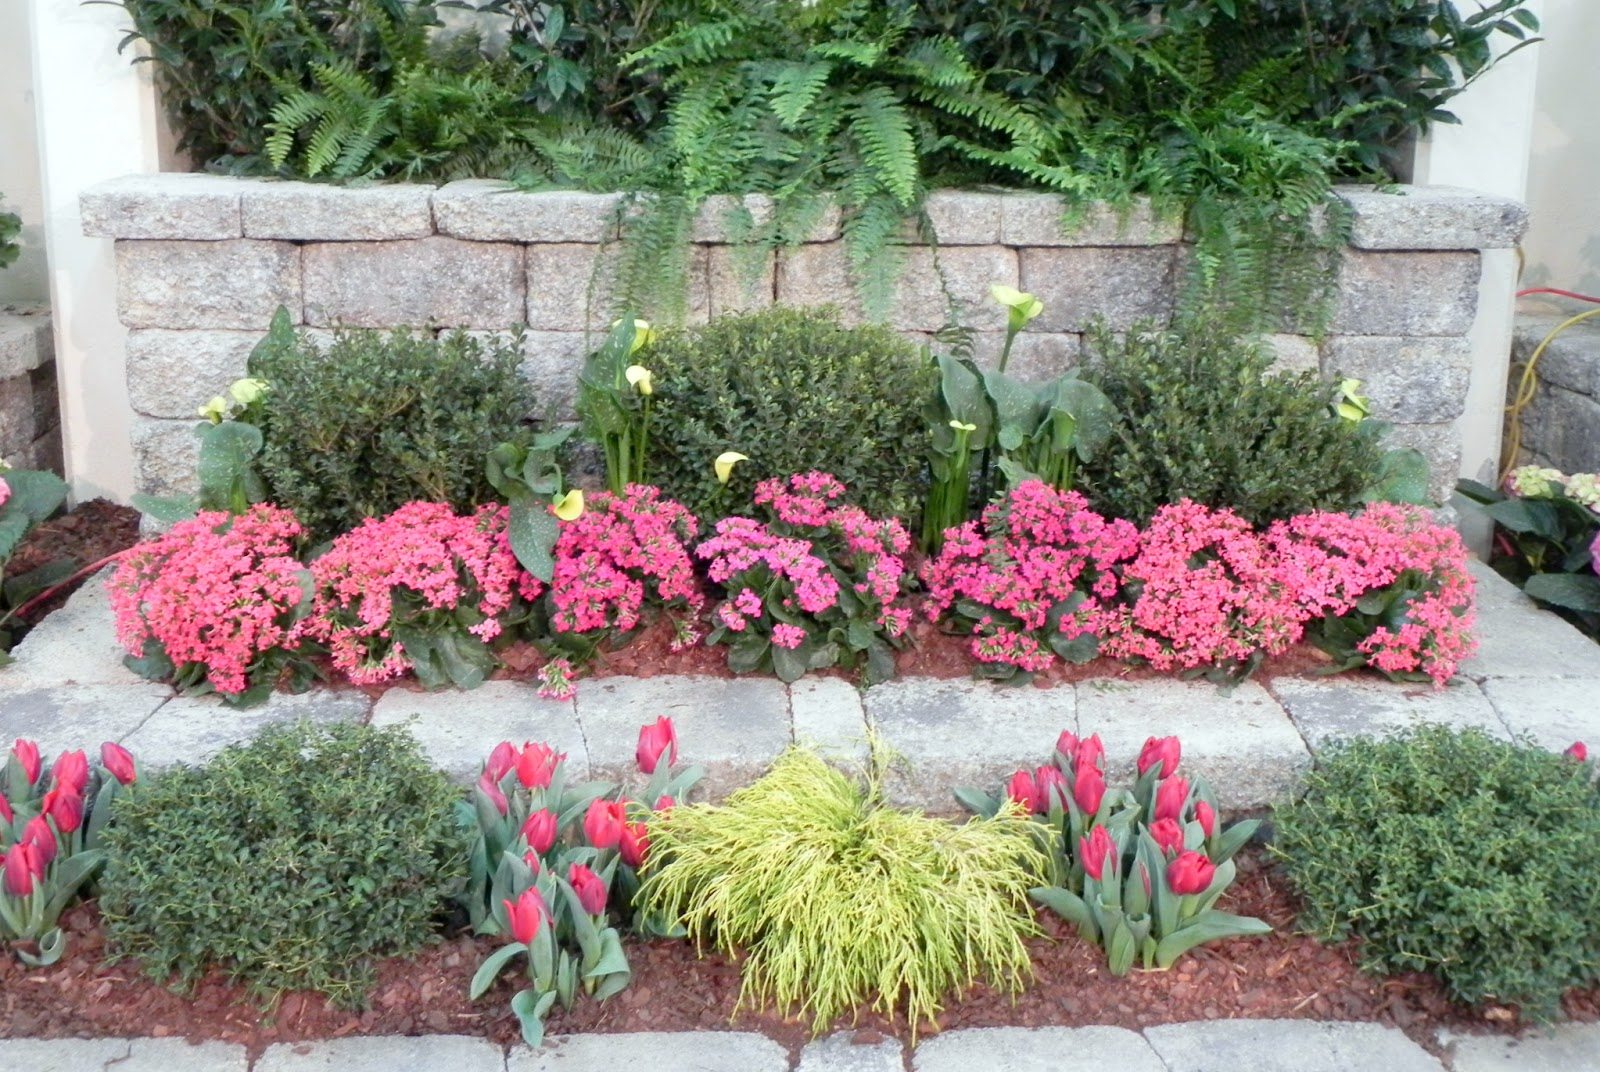 Gone Walkabout 2 Nashville Lawn And Garden Show 2017